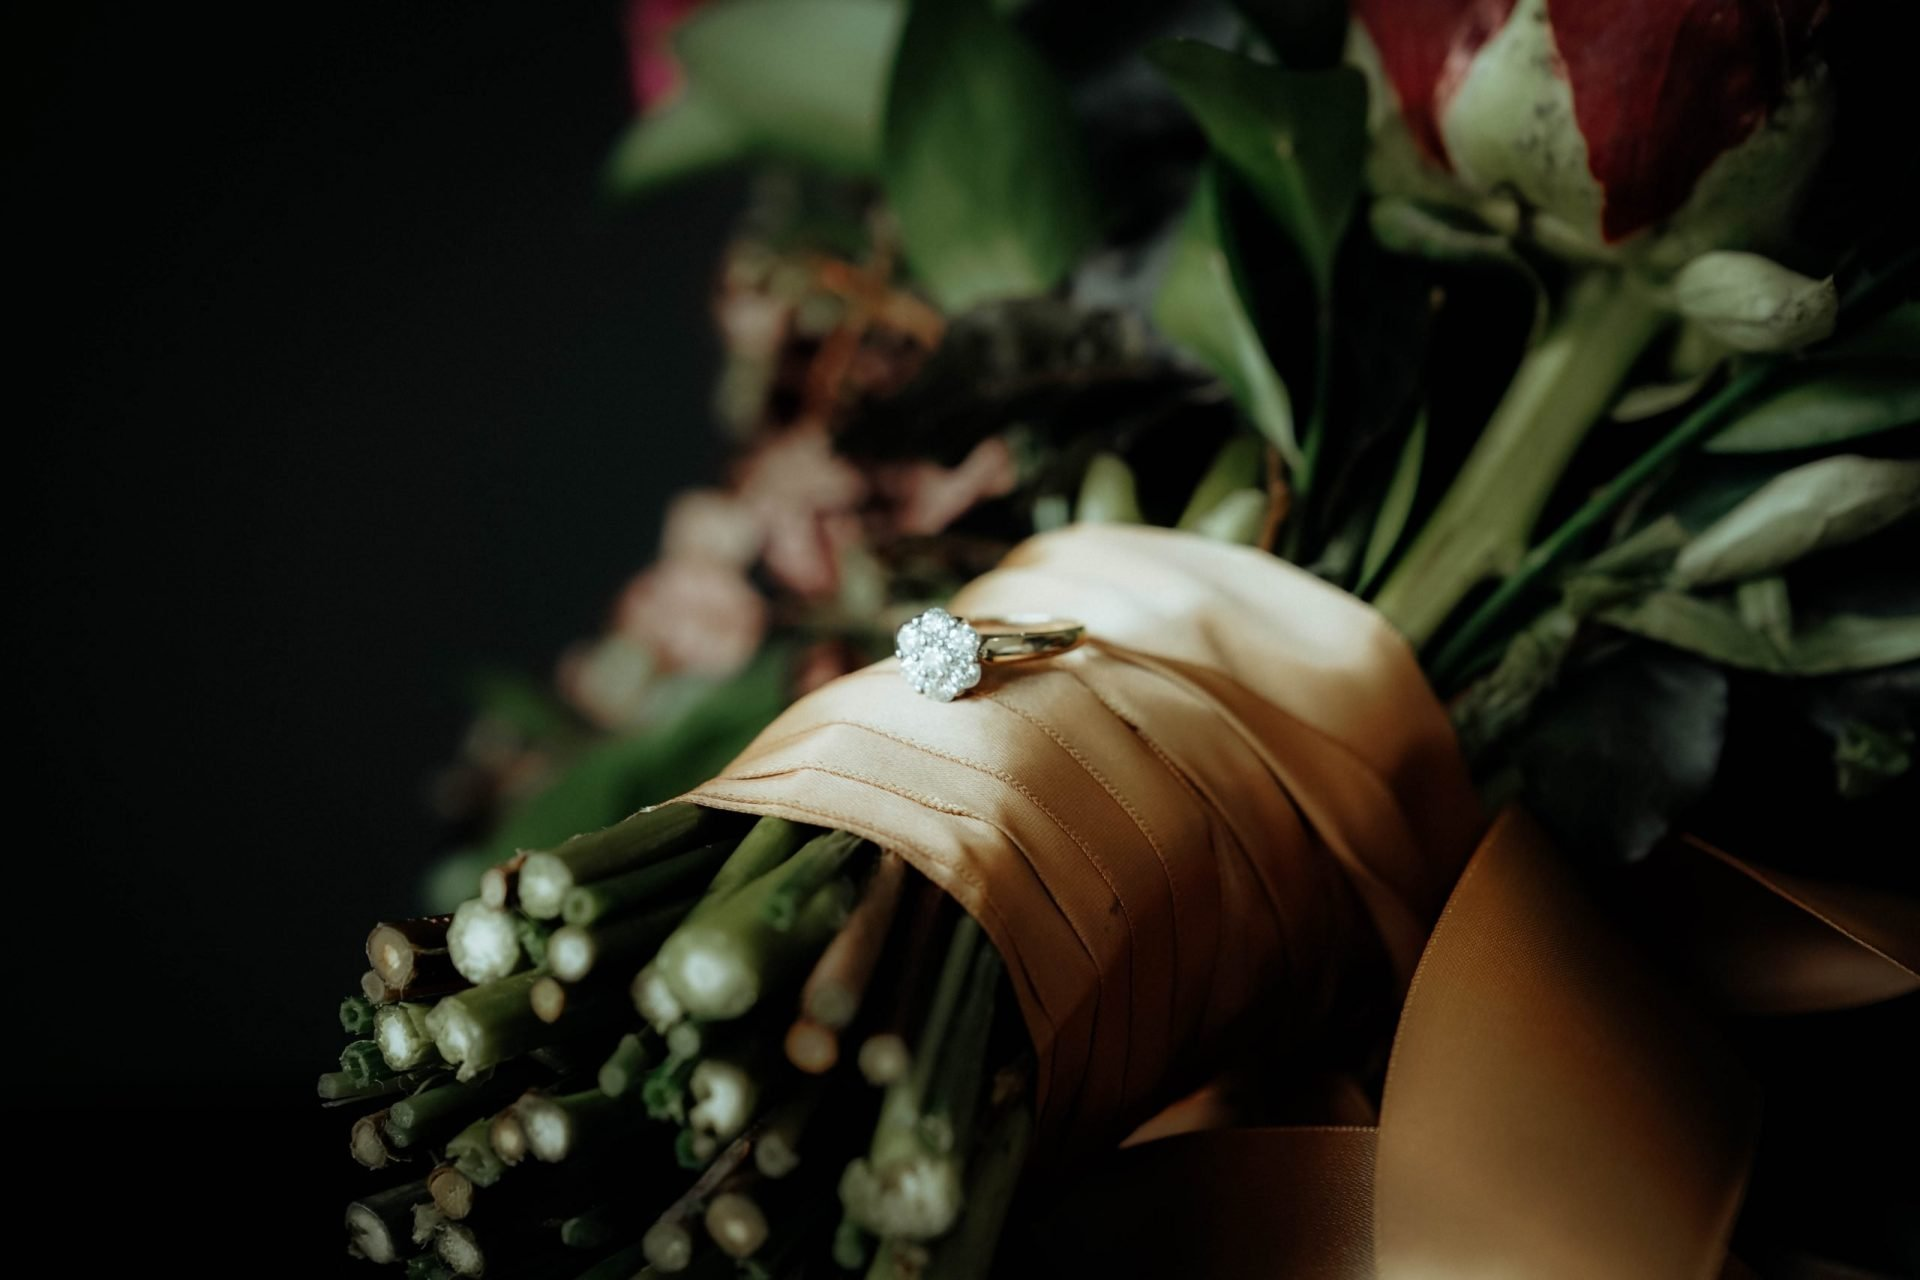 The ring is on the flowers